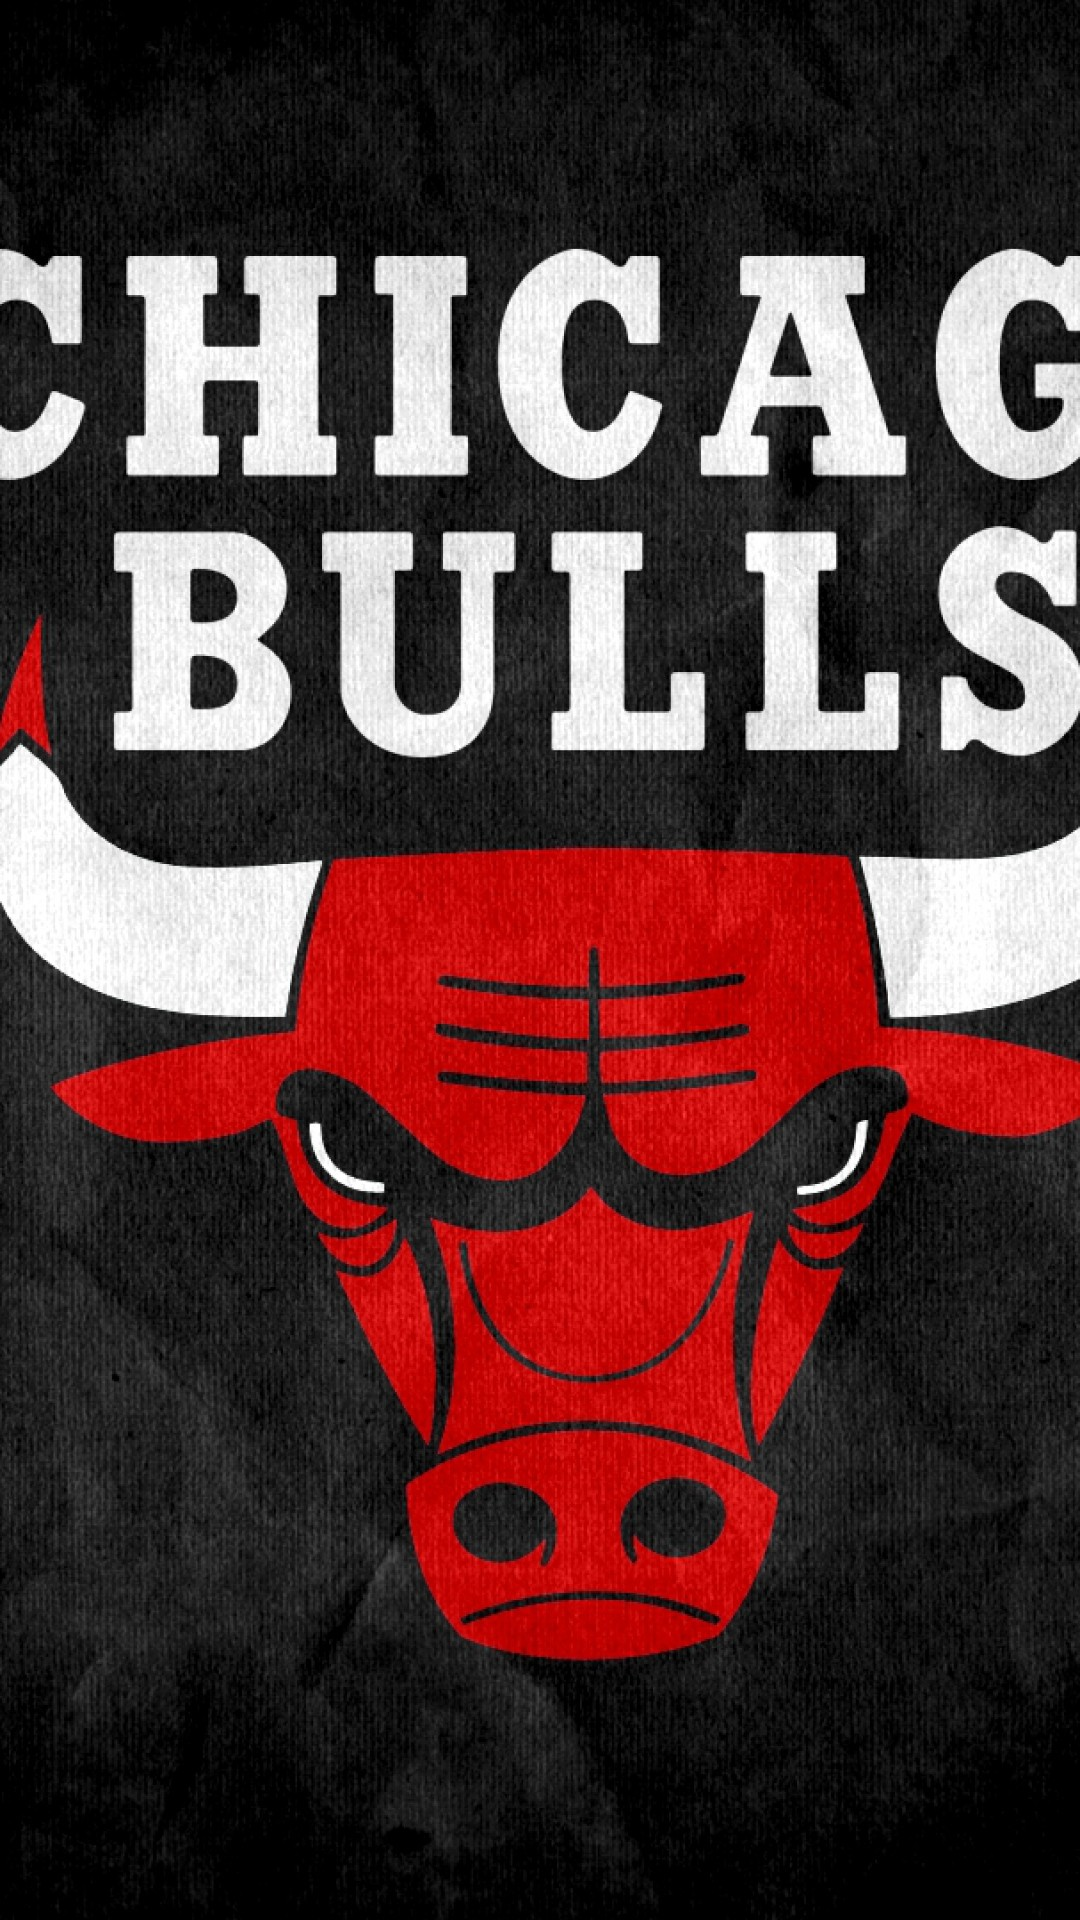 Chicago Bulls Hd Wallpapers for iPhone